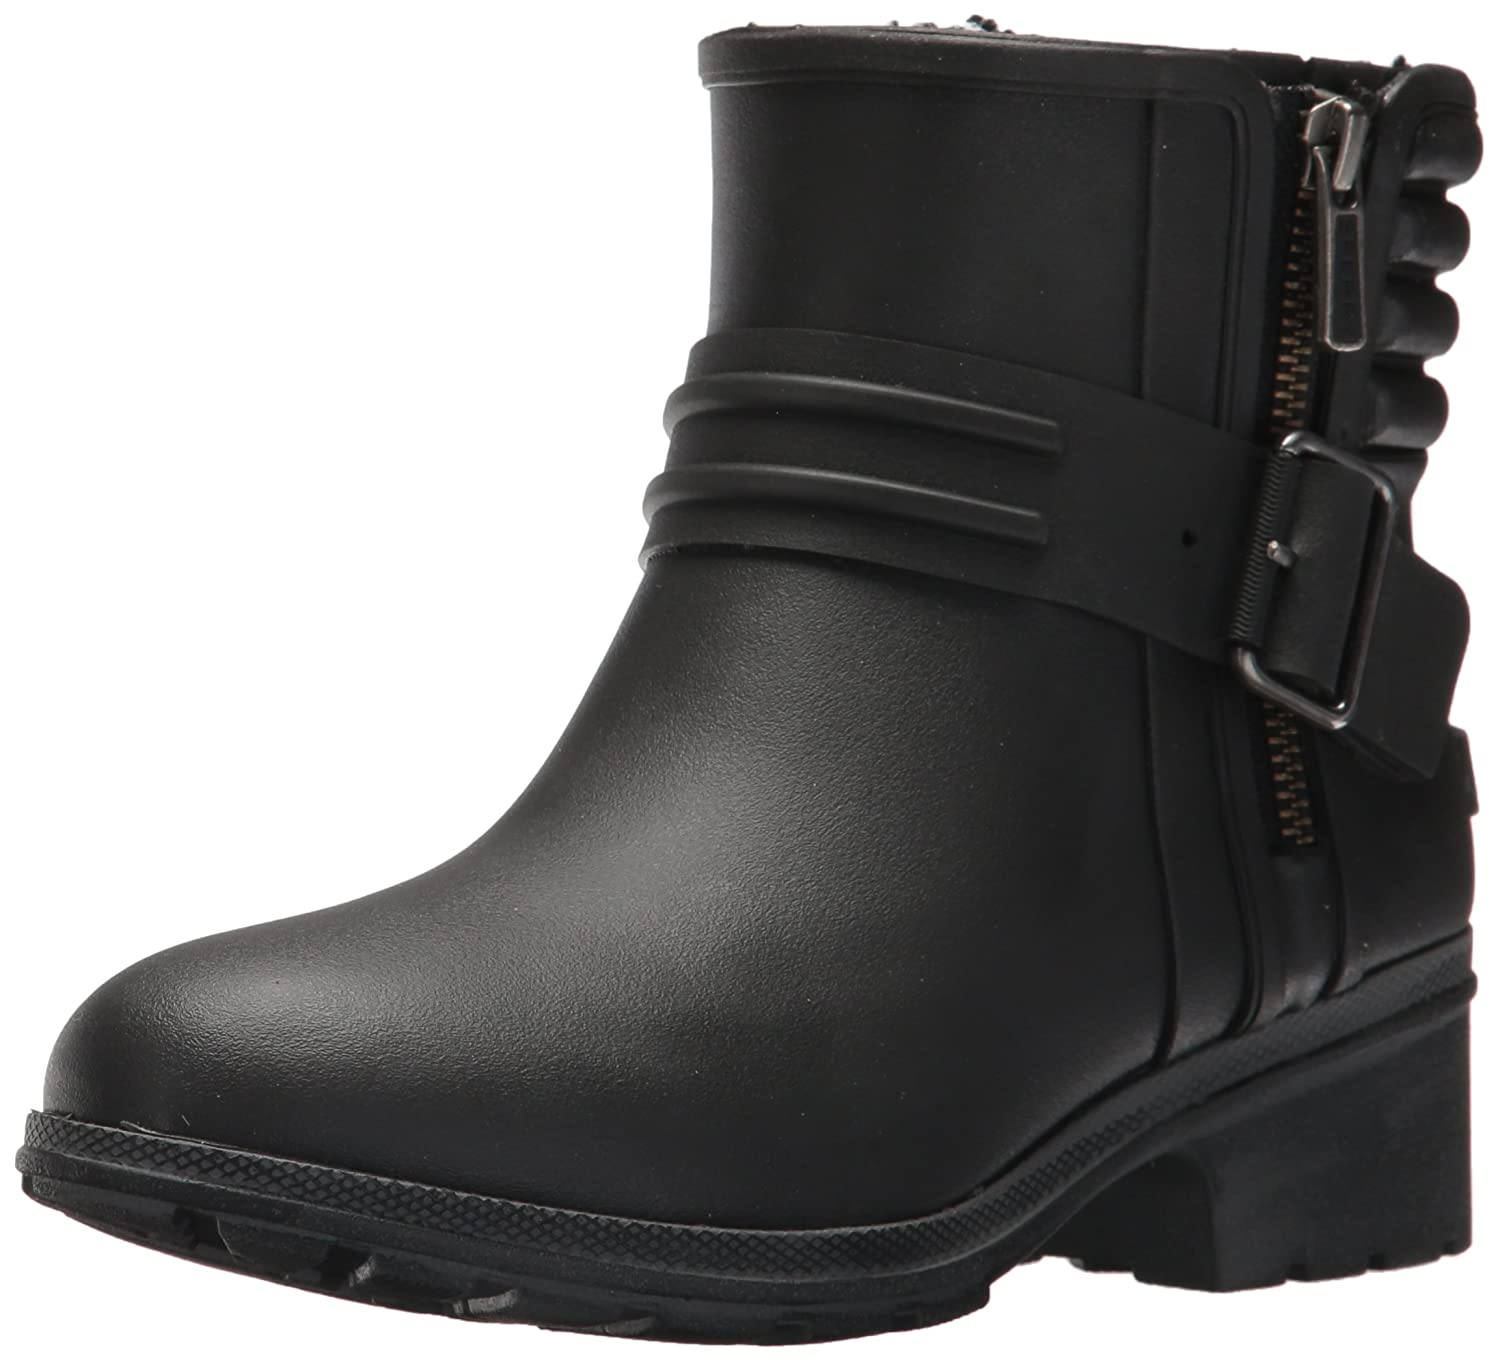 Sperry Top-Sider Women's Ariel Beck Rain Boot B01N0SYZZF 11 B(M) US|Black